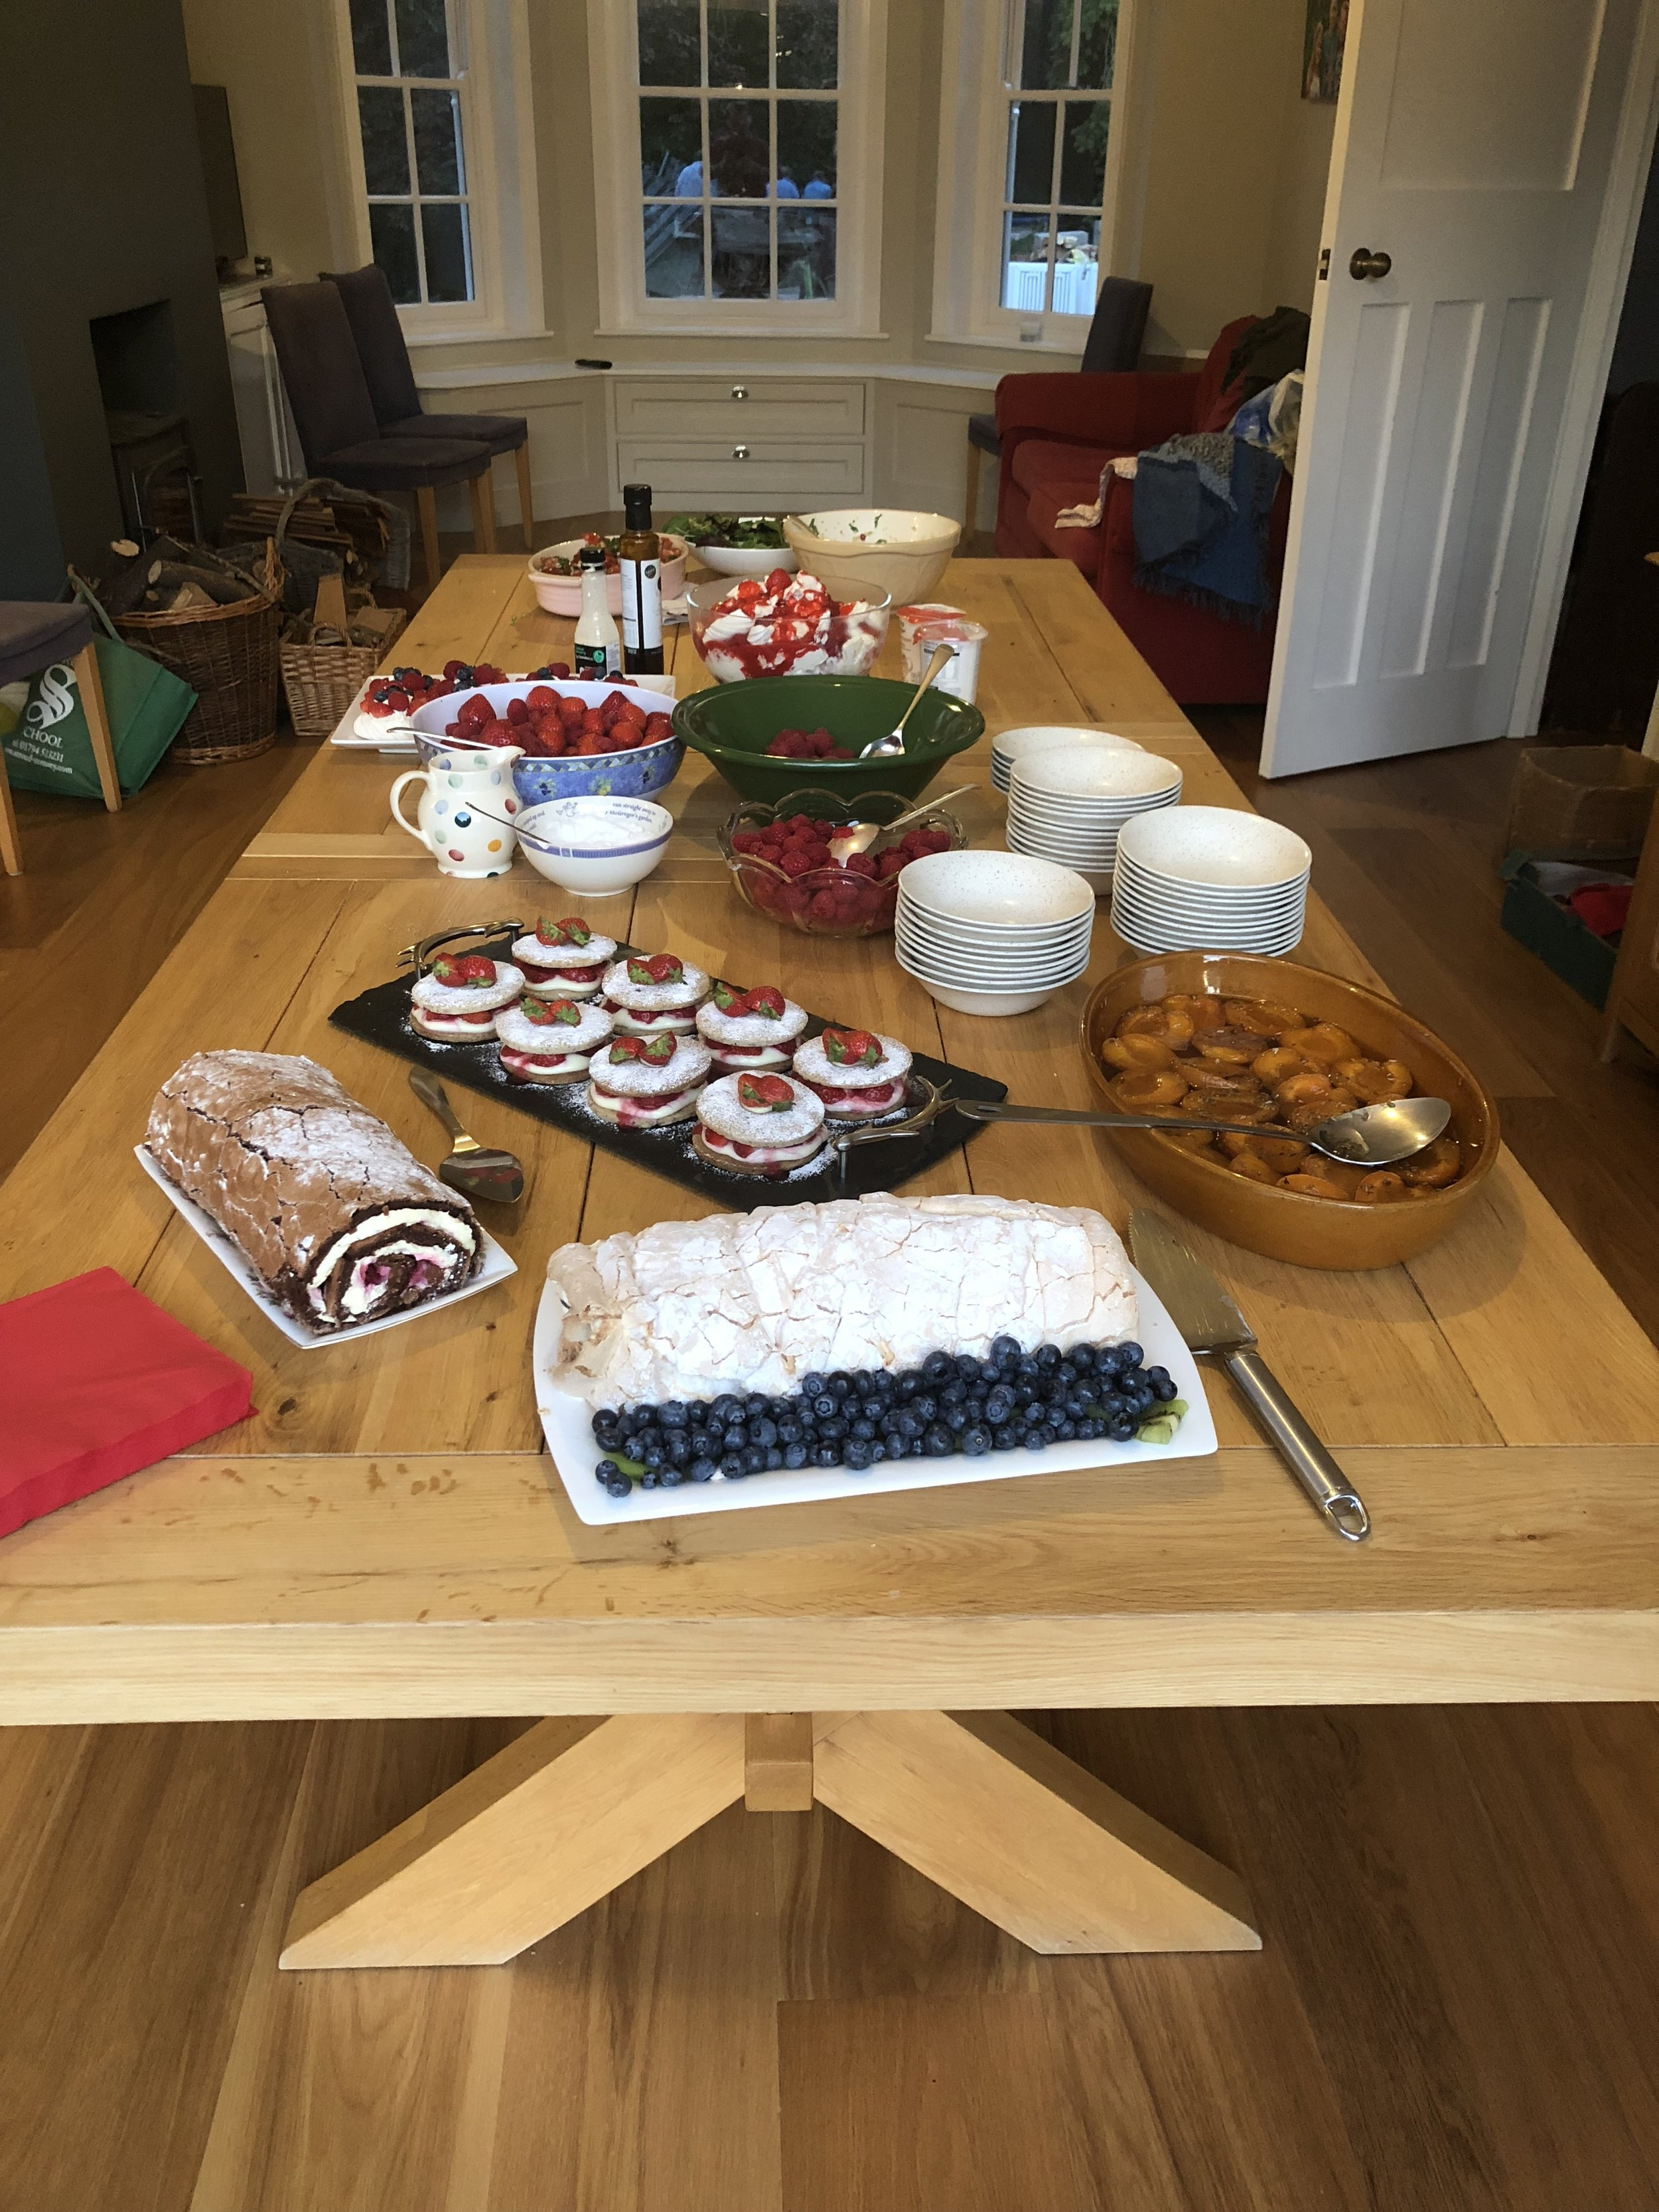 And then the puddings- definitely going to need to up the pre season training after these BakeOff beauties!